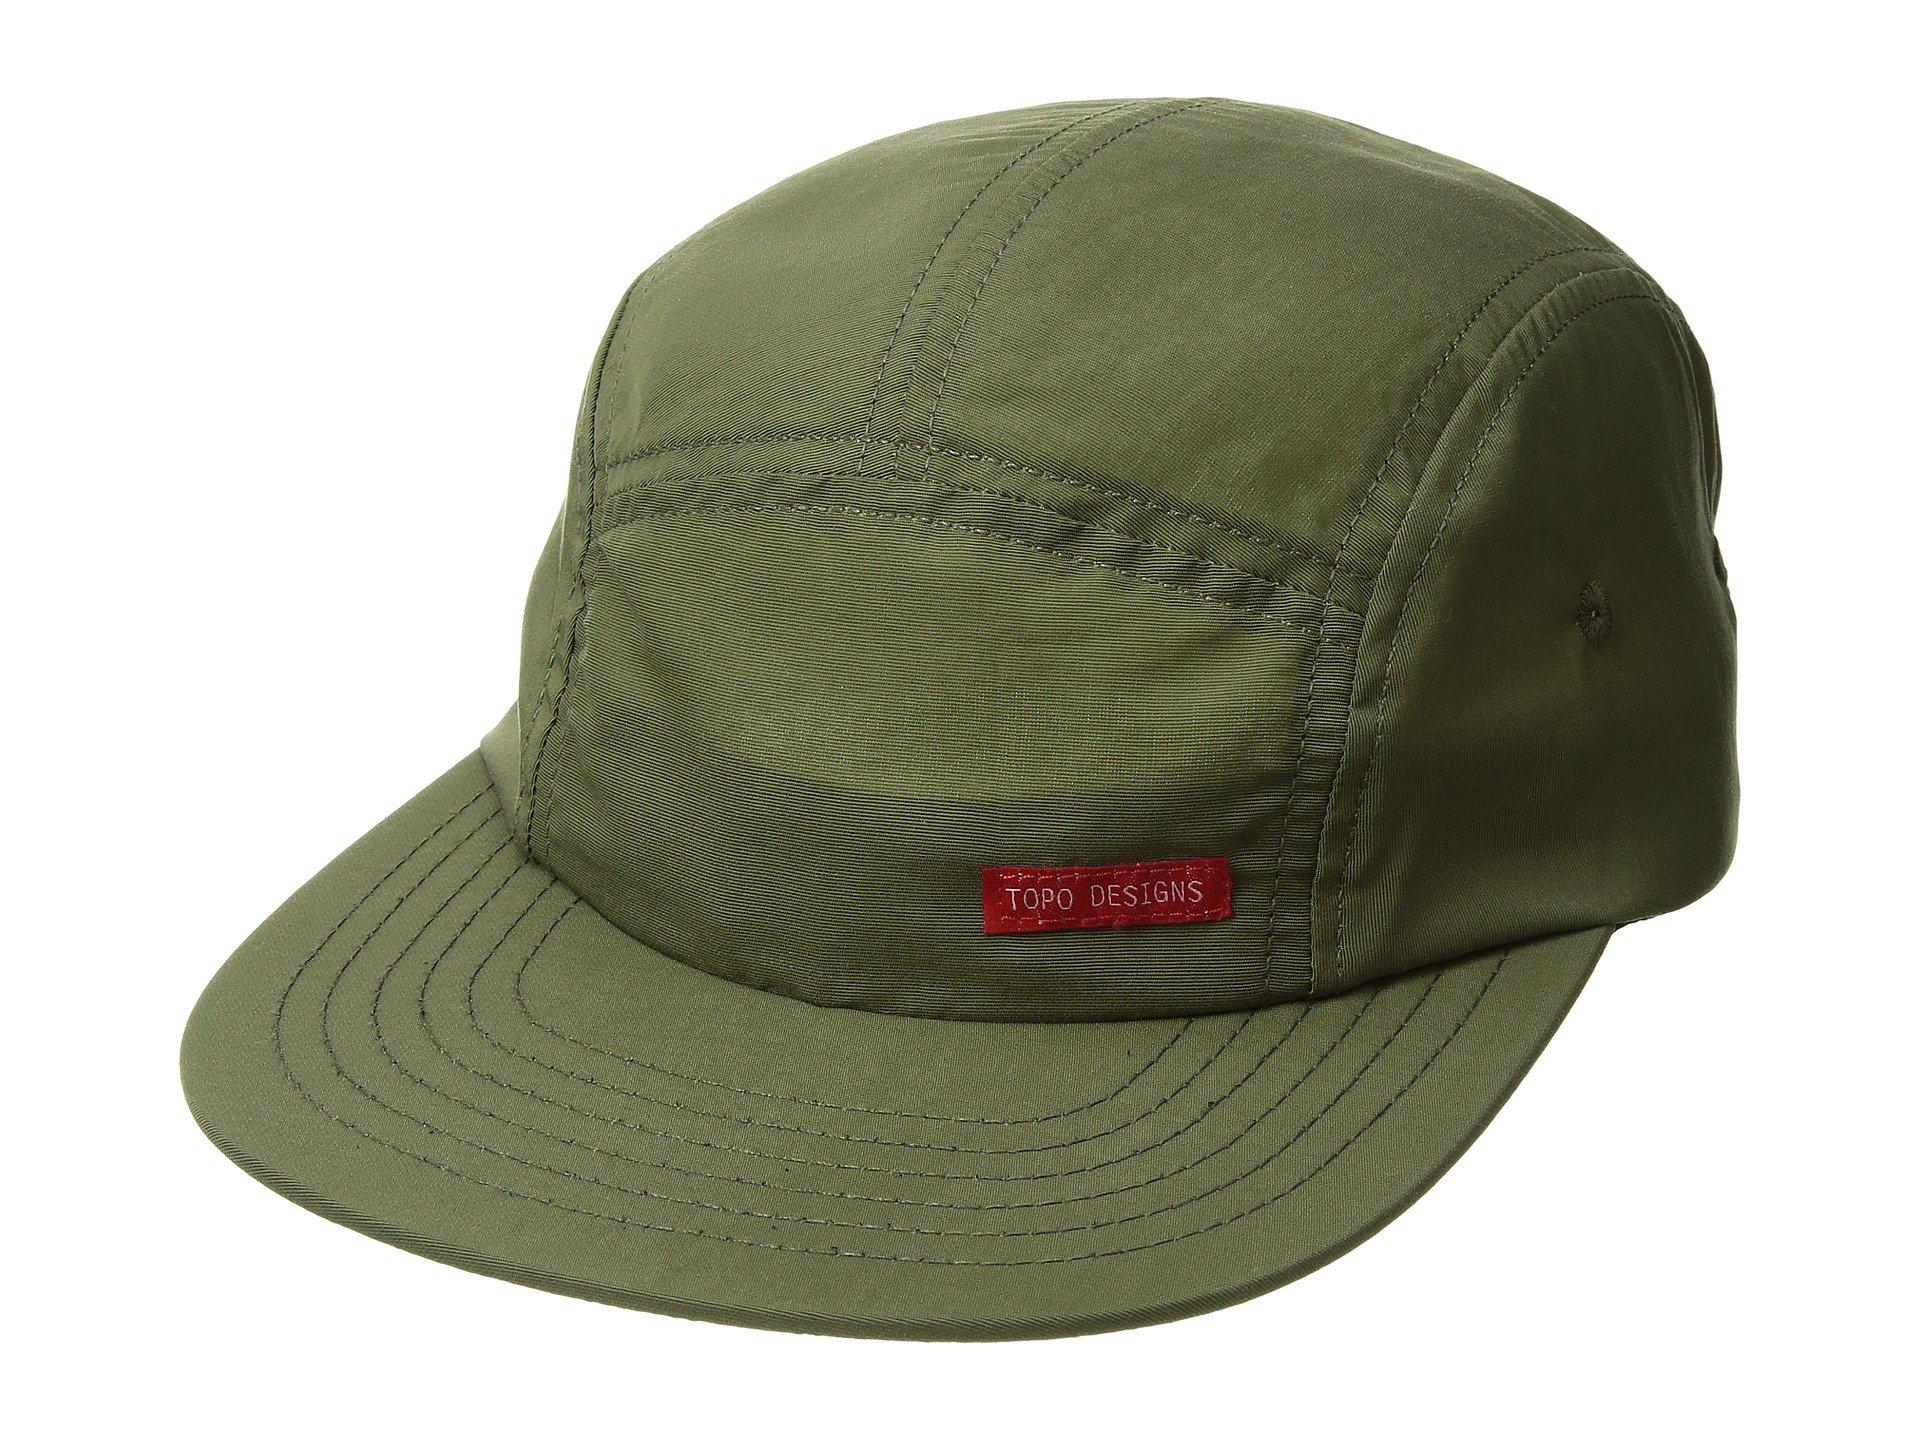 a49acd2518d7 Lyst - Topo Designs Nylon Camp Hat (olive) Caps in Green for Men